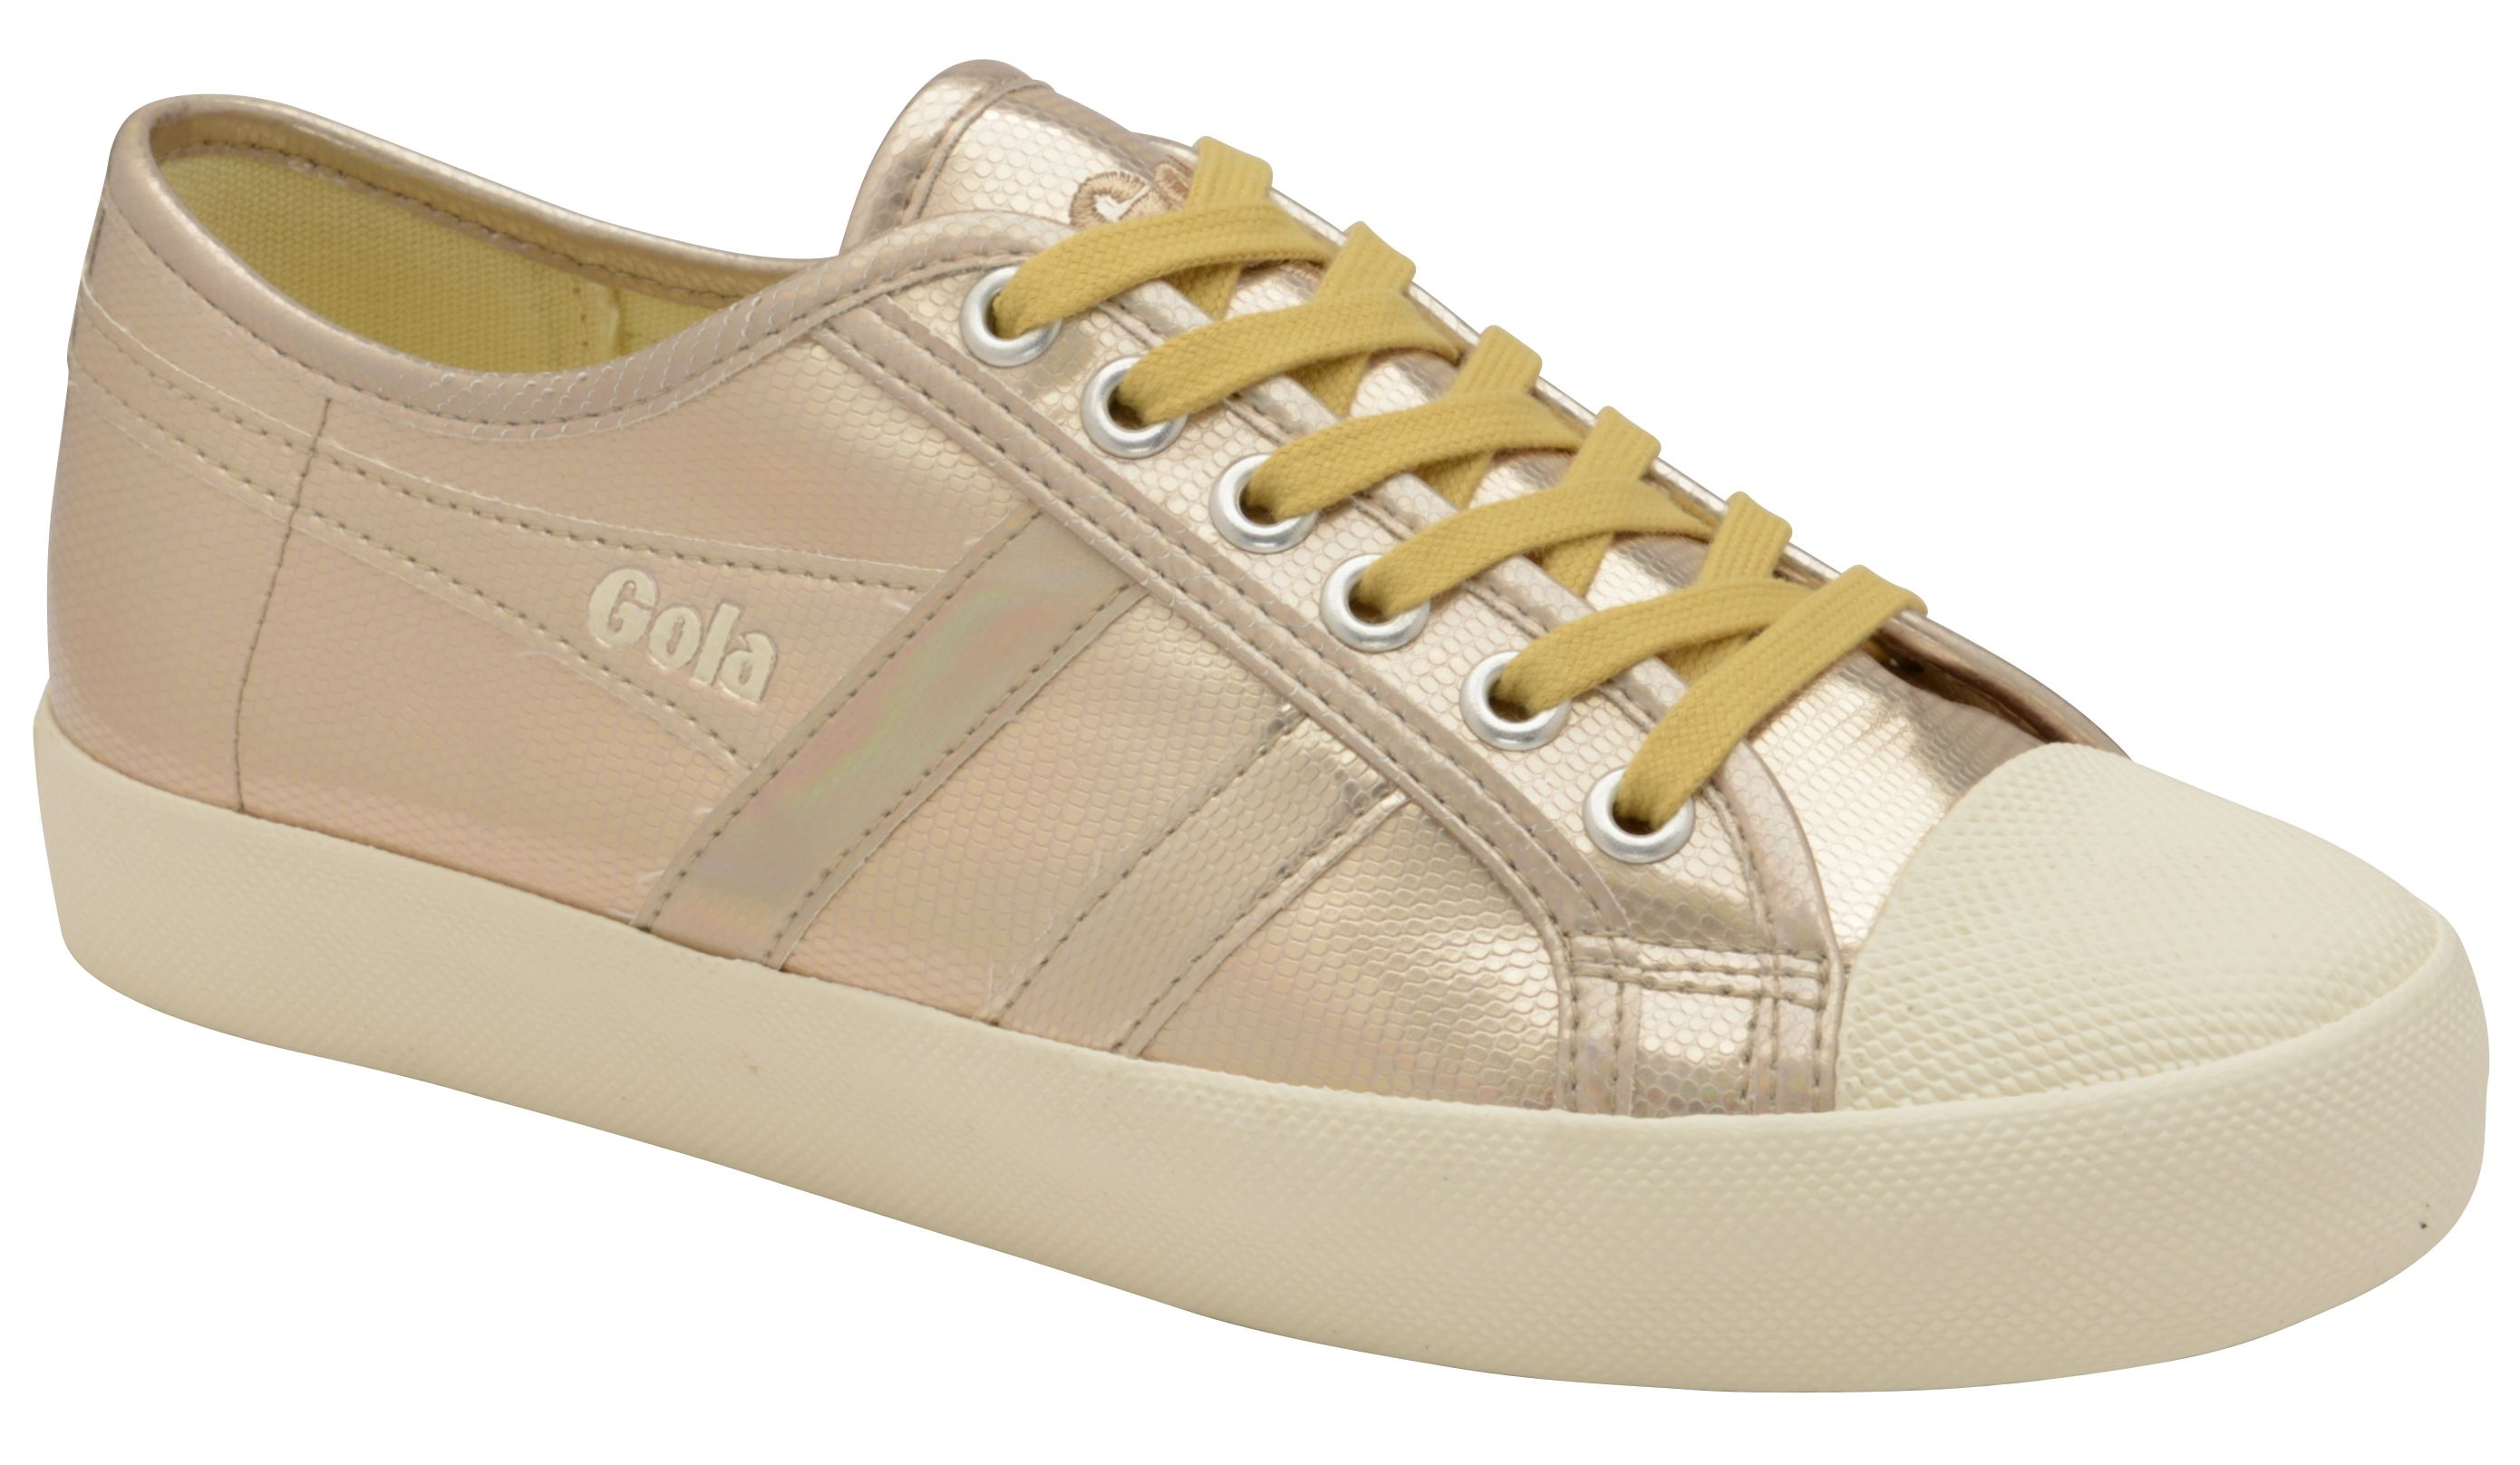 Gola Coaster Lizard Lace Up Trainers, Gold Silverlic